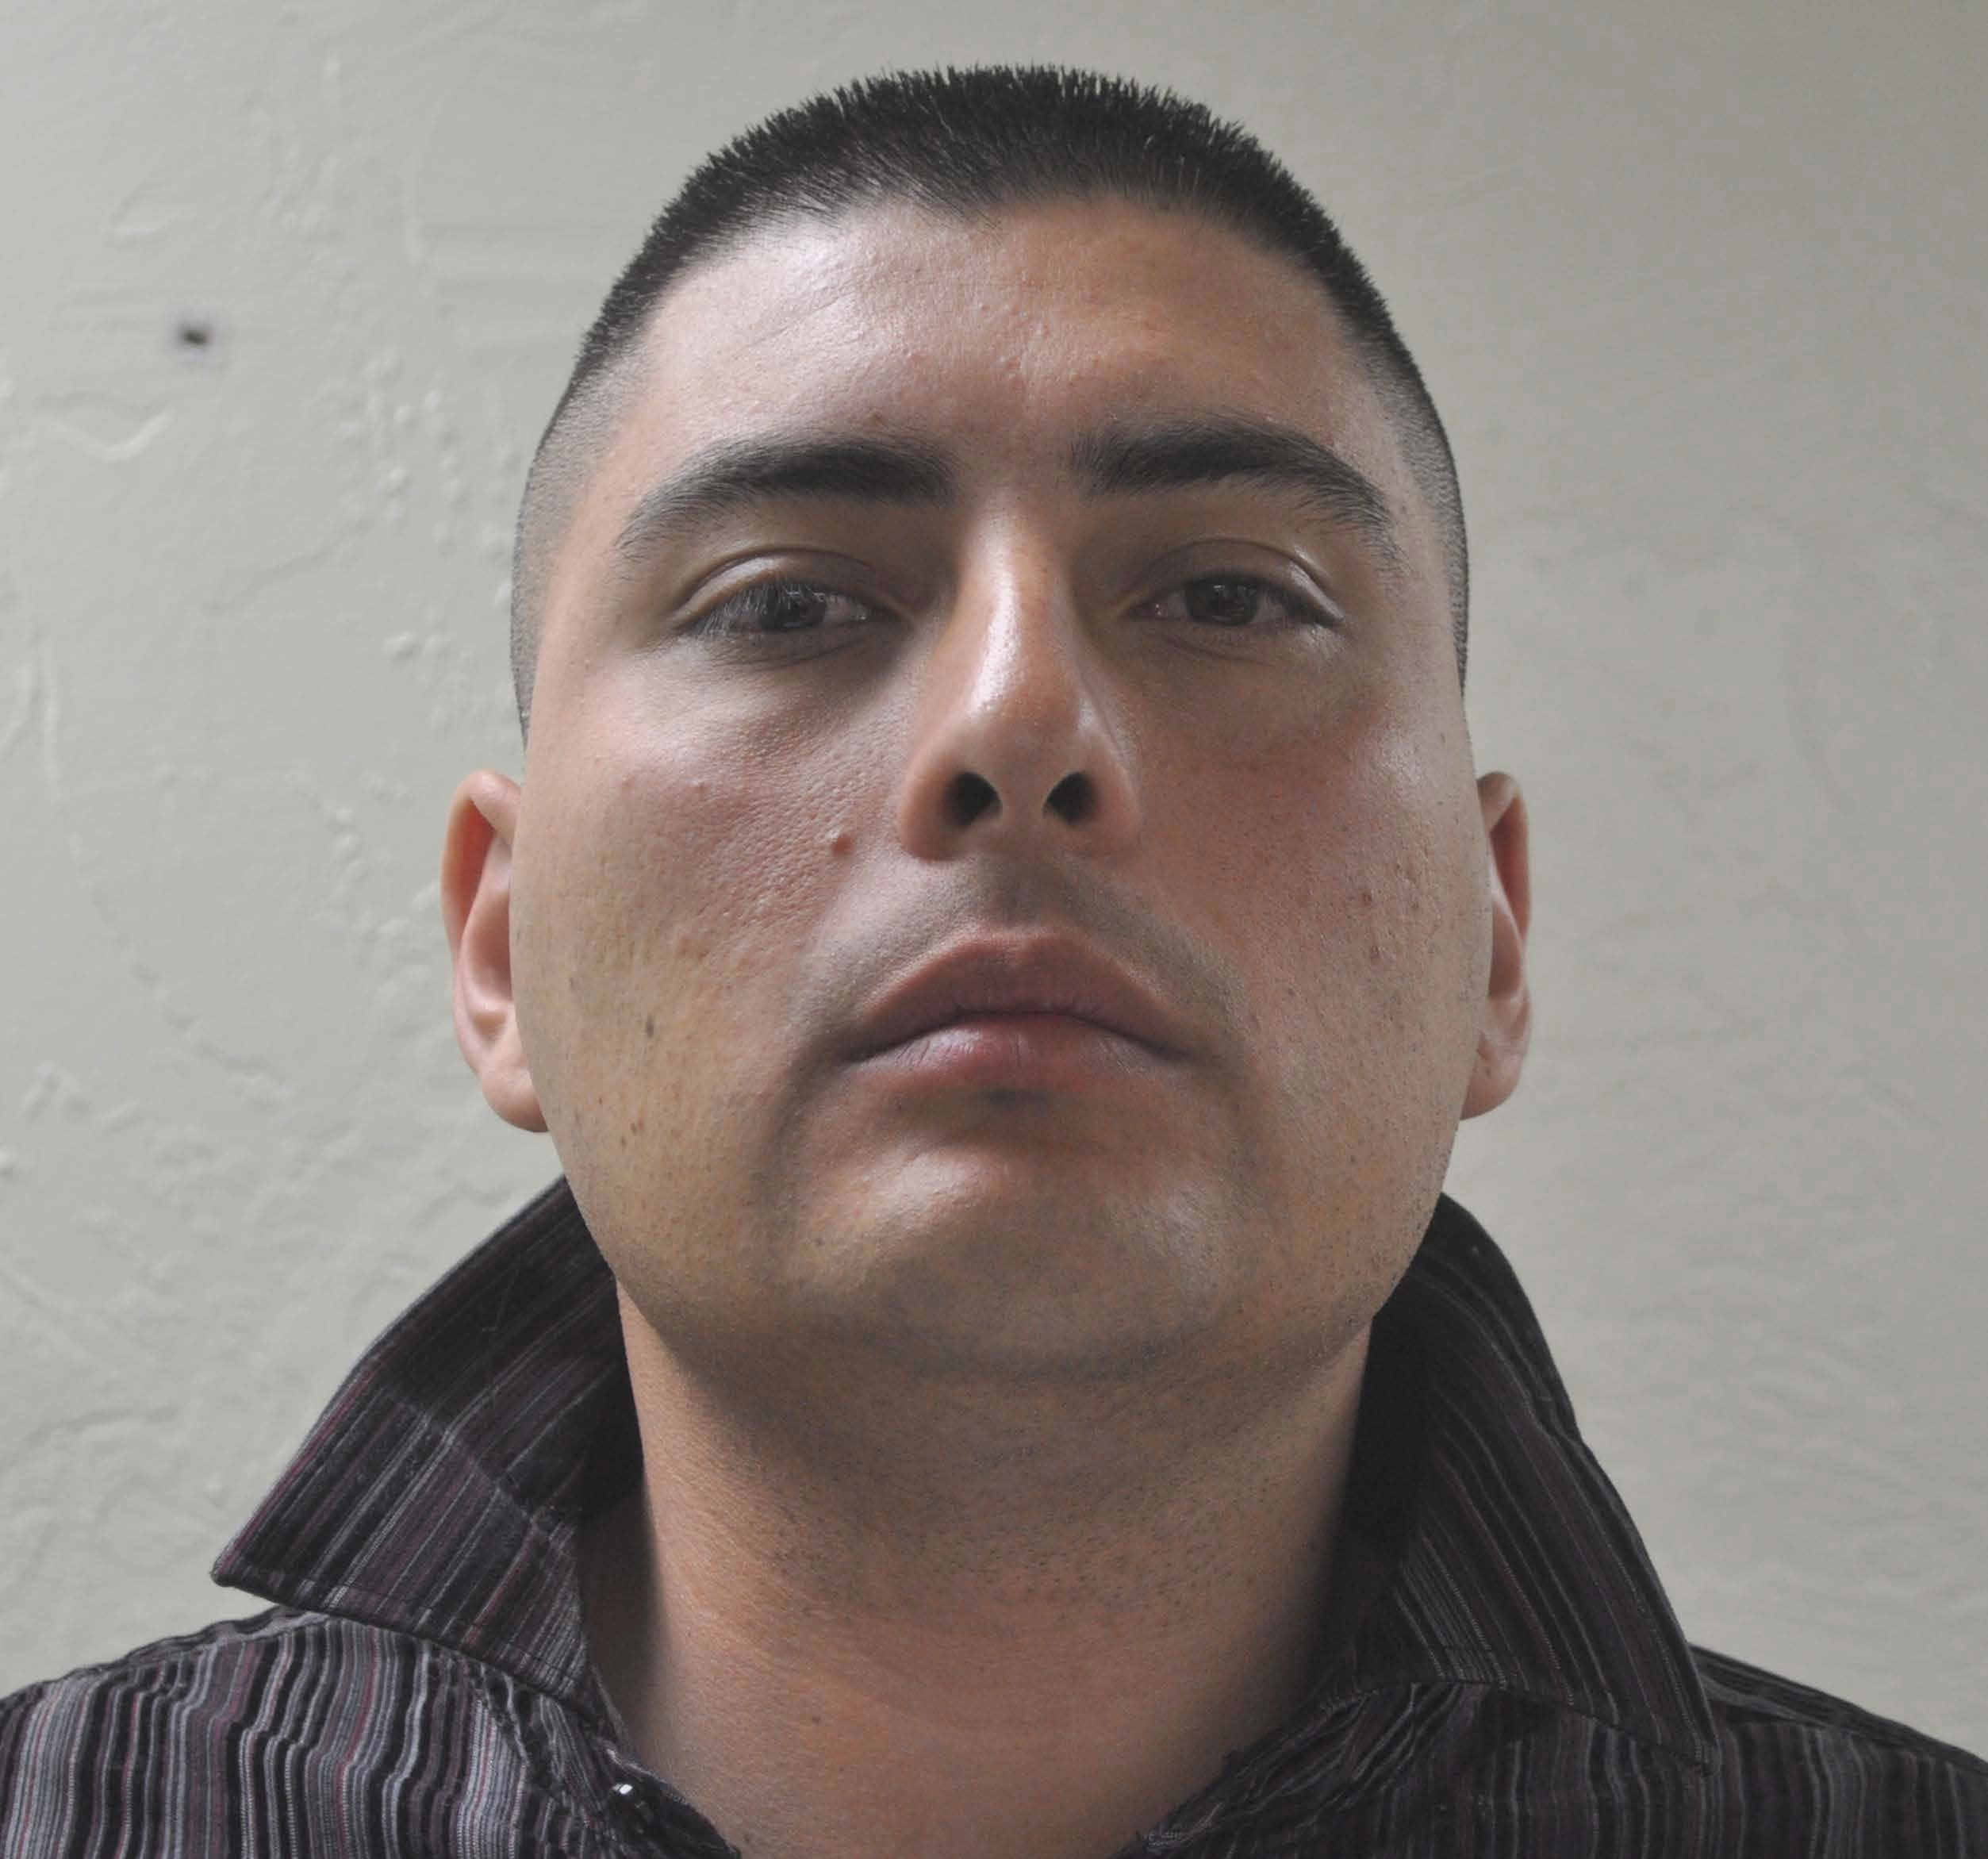 A jury found Mario Sergio Dorame guilty of transporting more than 70 pounds (32 kilograms) of cocaine, conducting a criminal enterprise and conspiracy. (Source: AZ Attorney General)